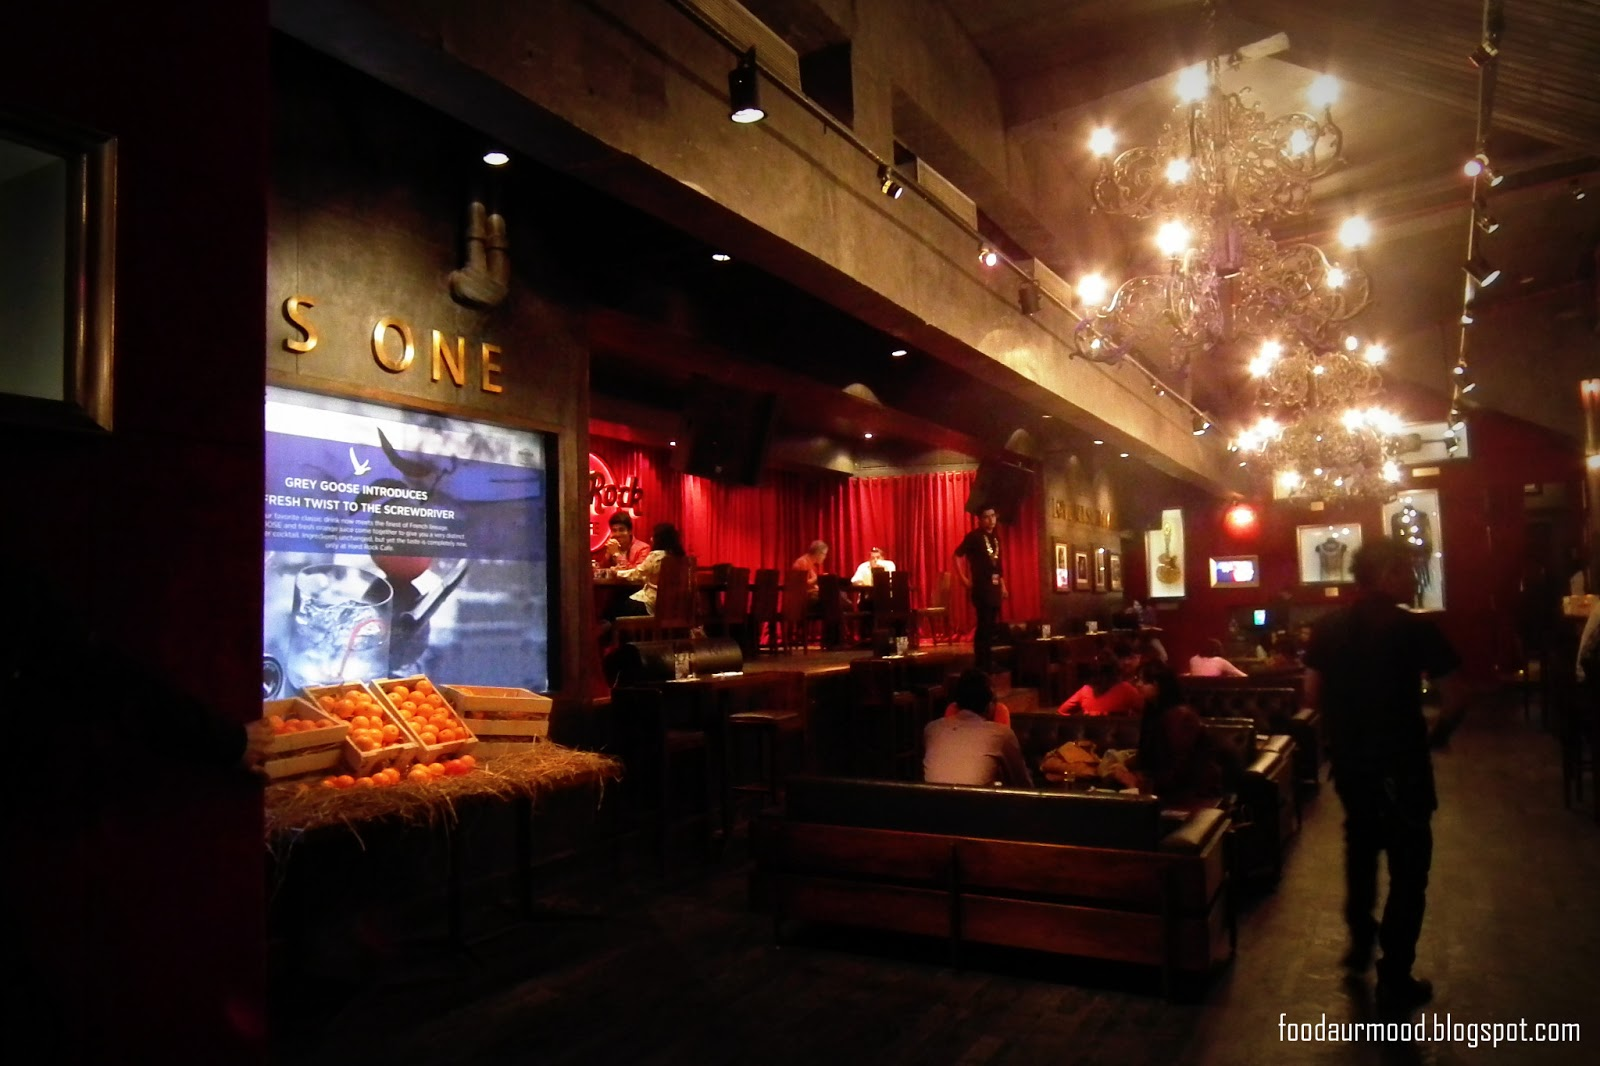 Experience With Burgers At Hard Rock Cafe Food Aur Mood